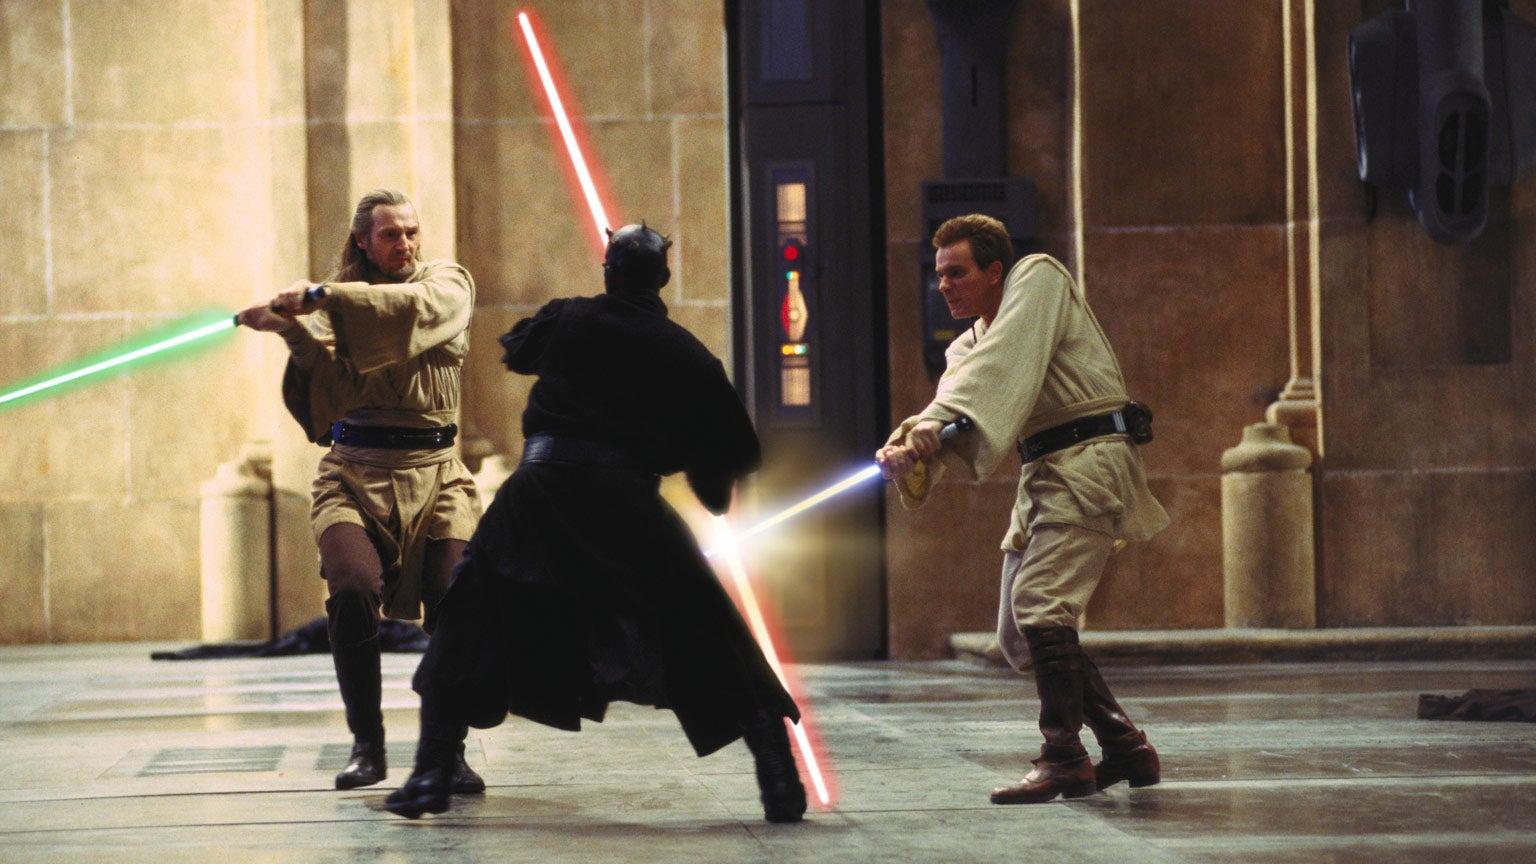 disney io9 lucasfilm revenge-of-the-sith star-wars star-wars-a-phantom-menace star-wars-attack-of-the-clones vfx